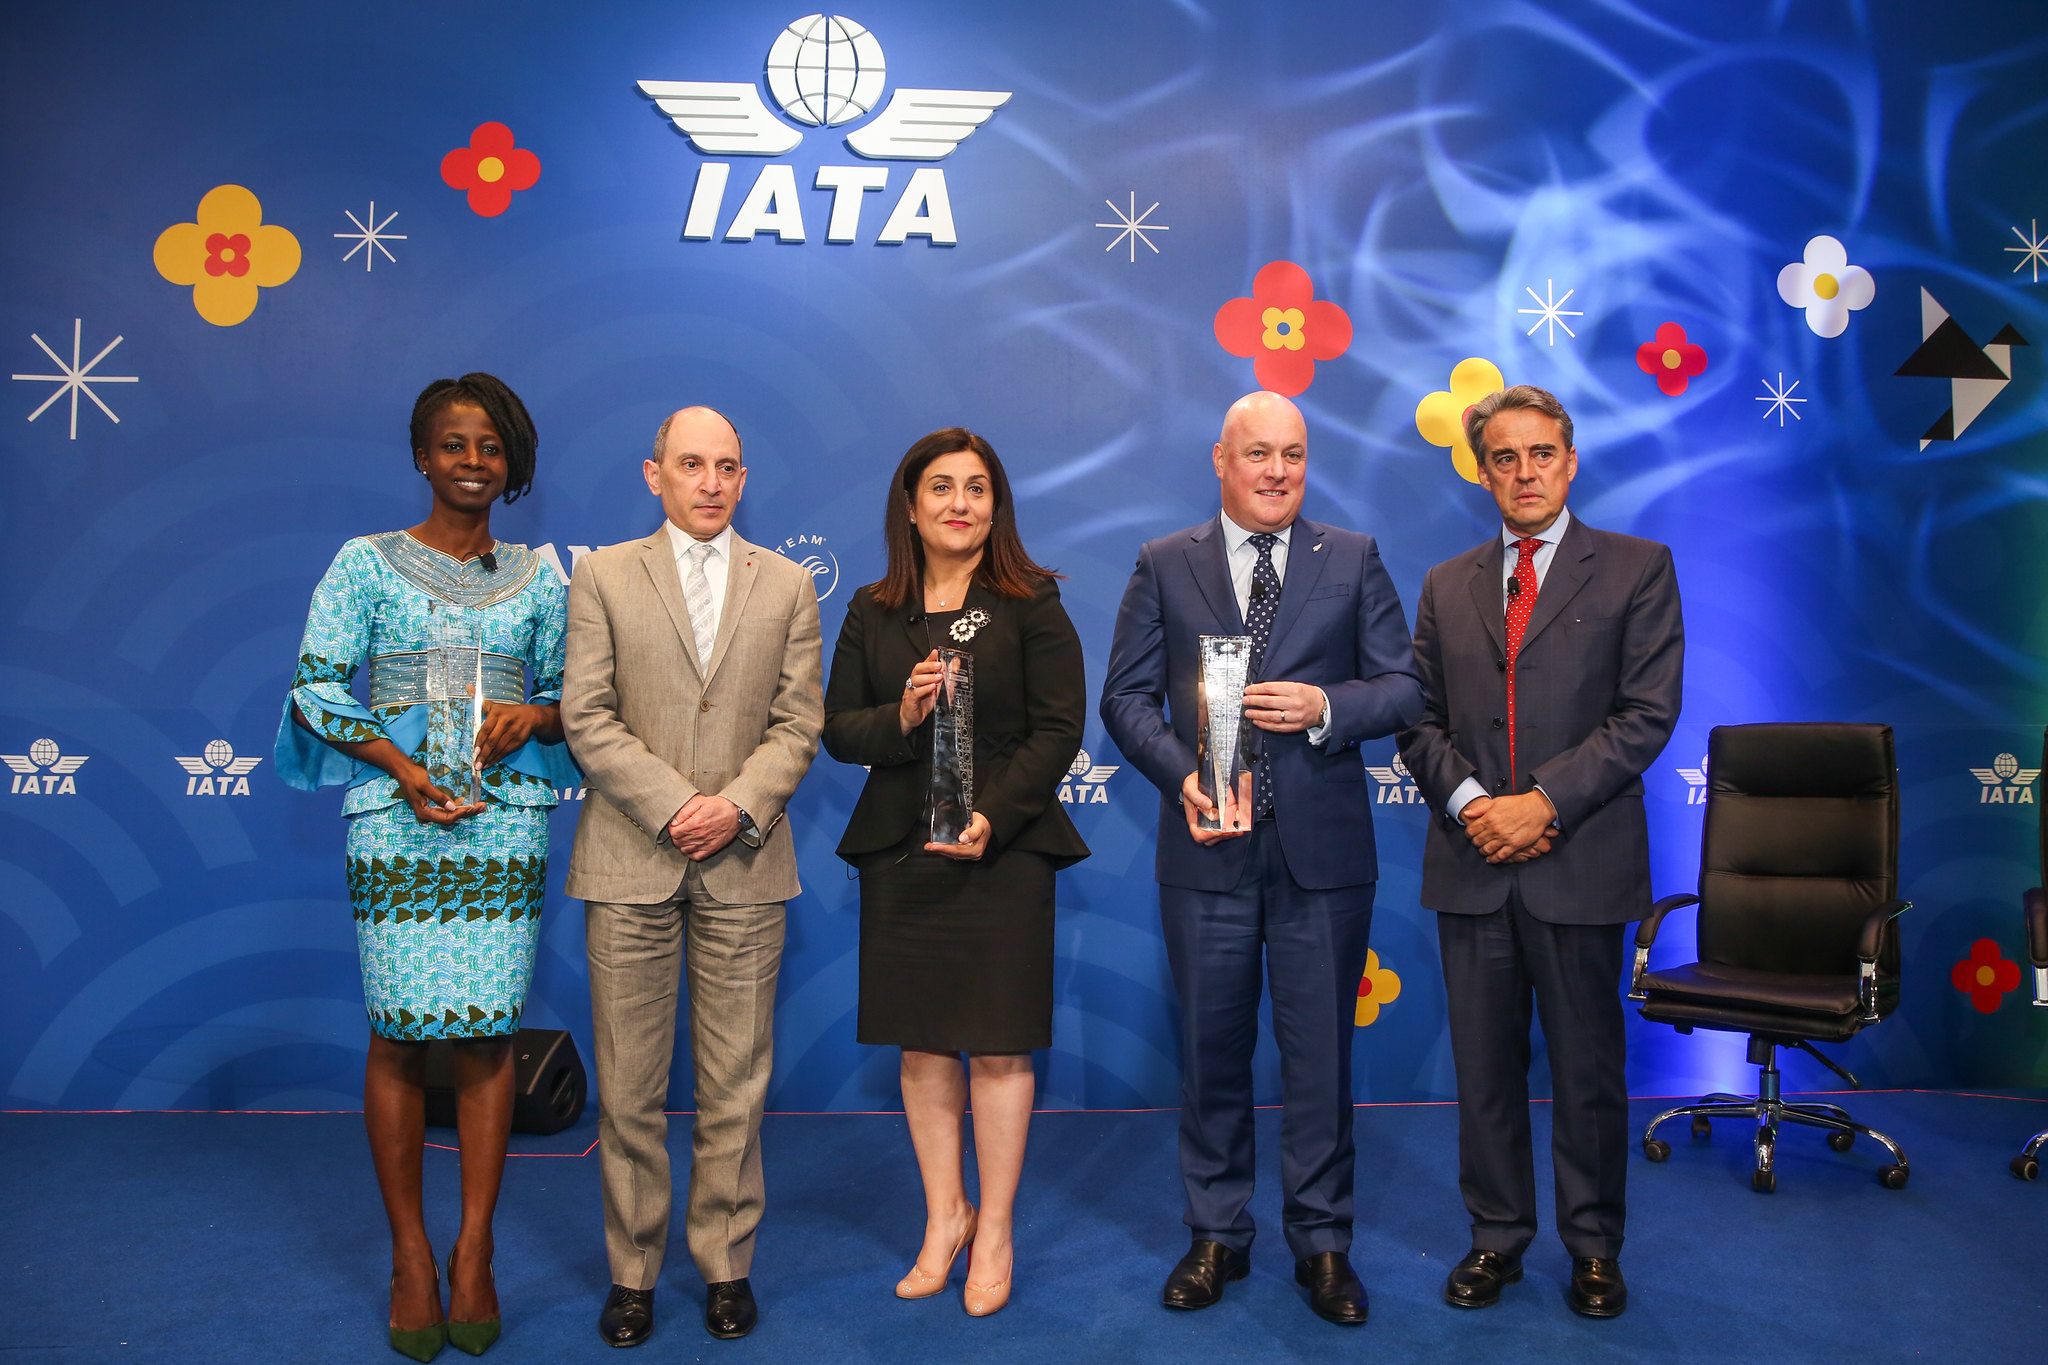 IATA Diversity Awards